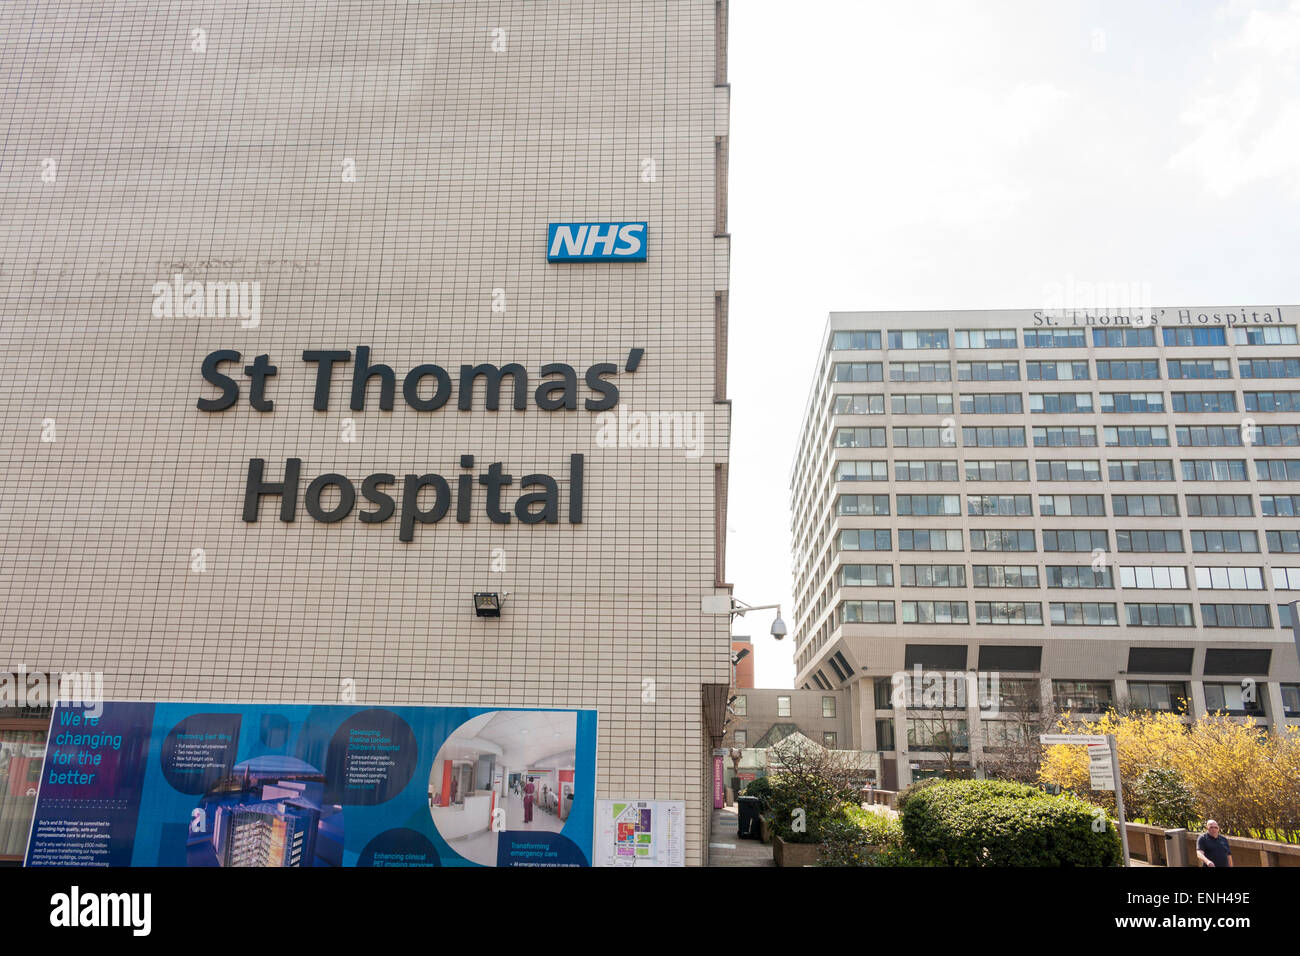 Exterior of St Thomas' Hospital in London, UK - Stock Image